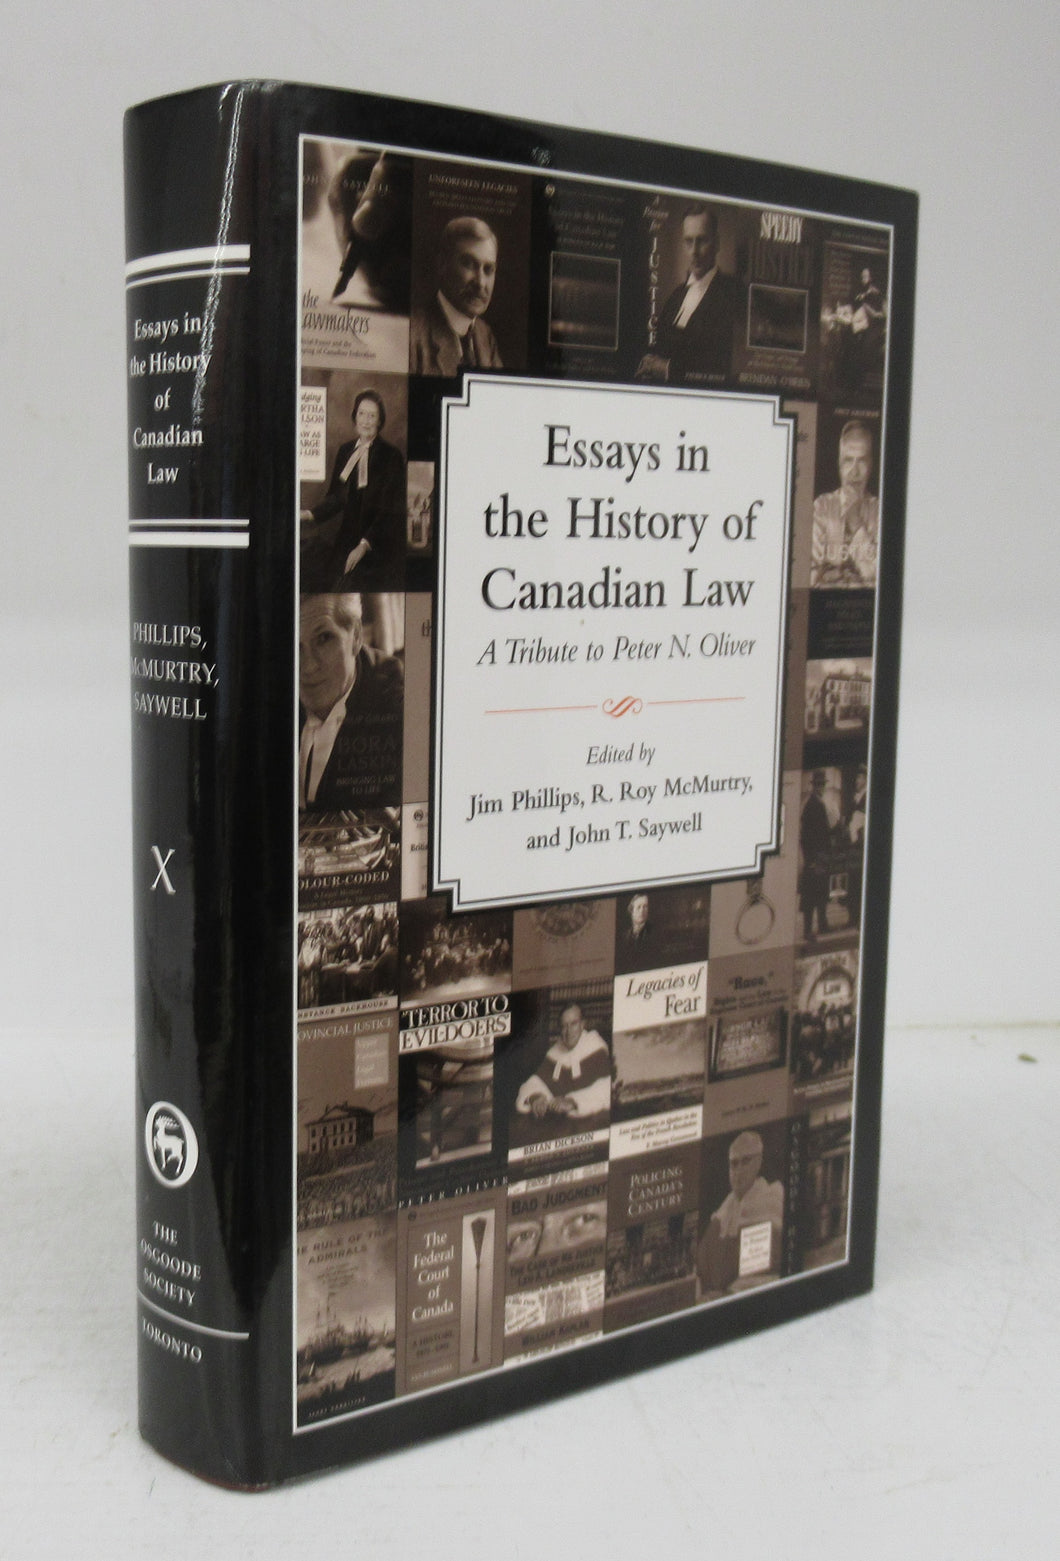 Essays in the History of Canadian Law: A Tribute to Peter N. Oliver